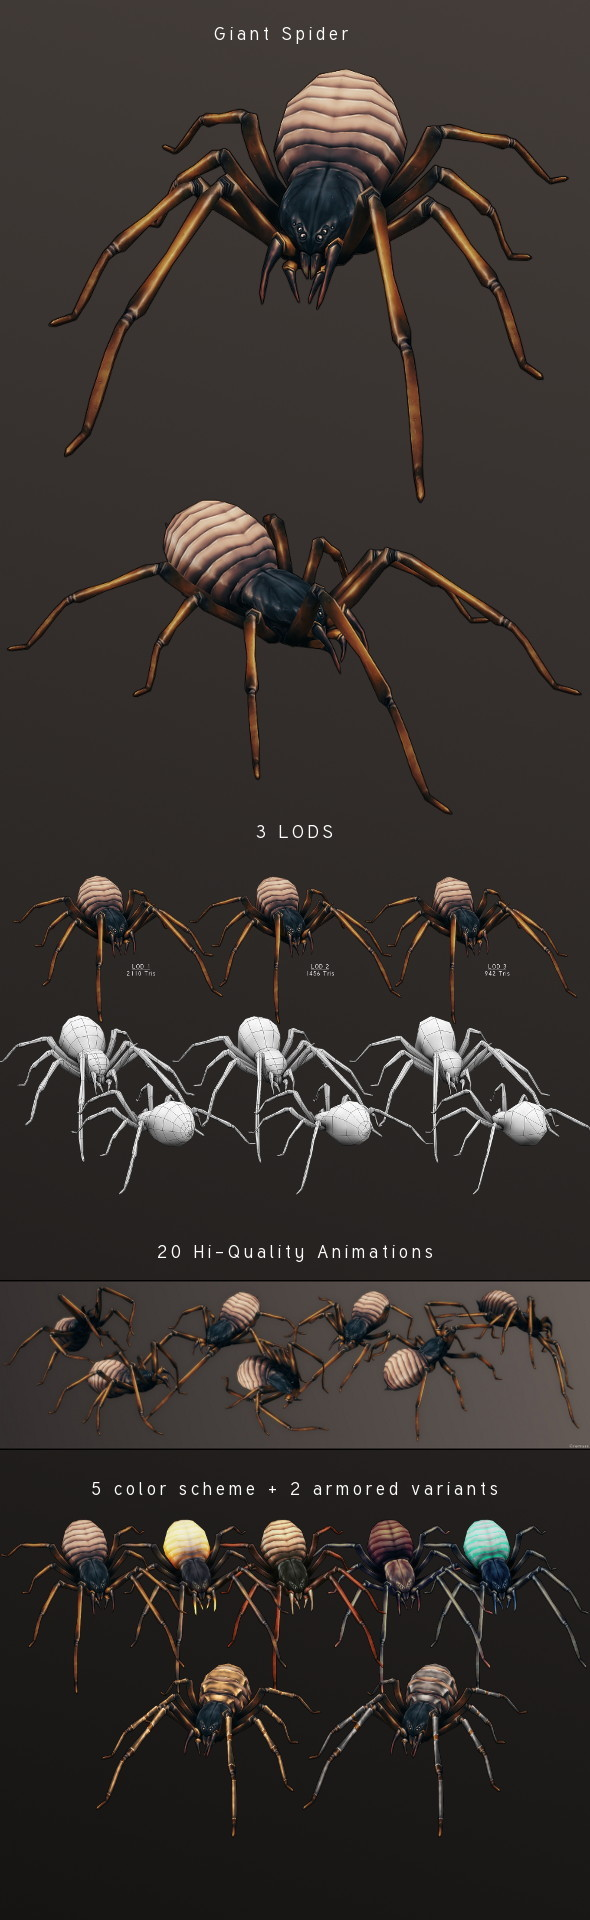 LowPoly HandPainted Giant Spider - 3DOcean Item for Sale